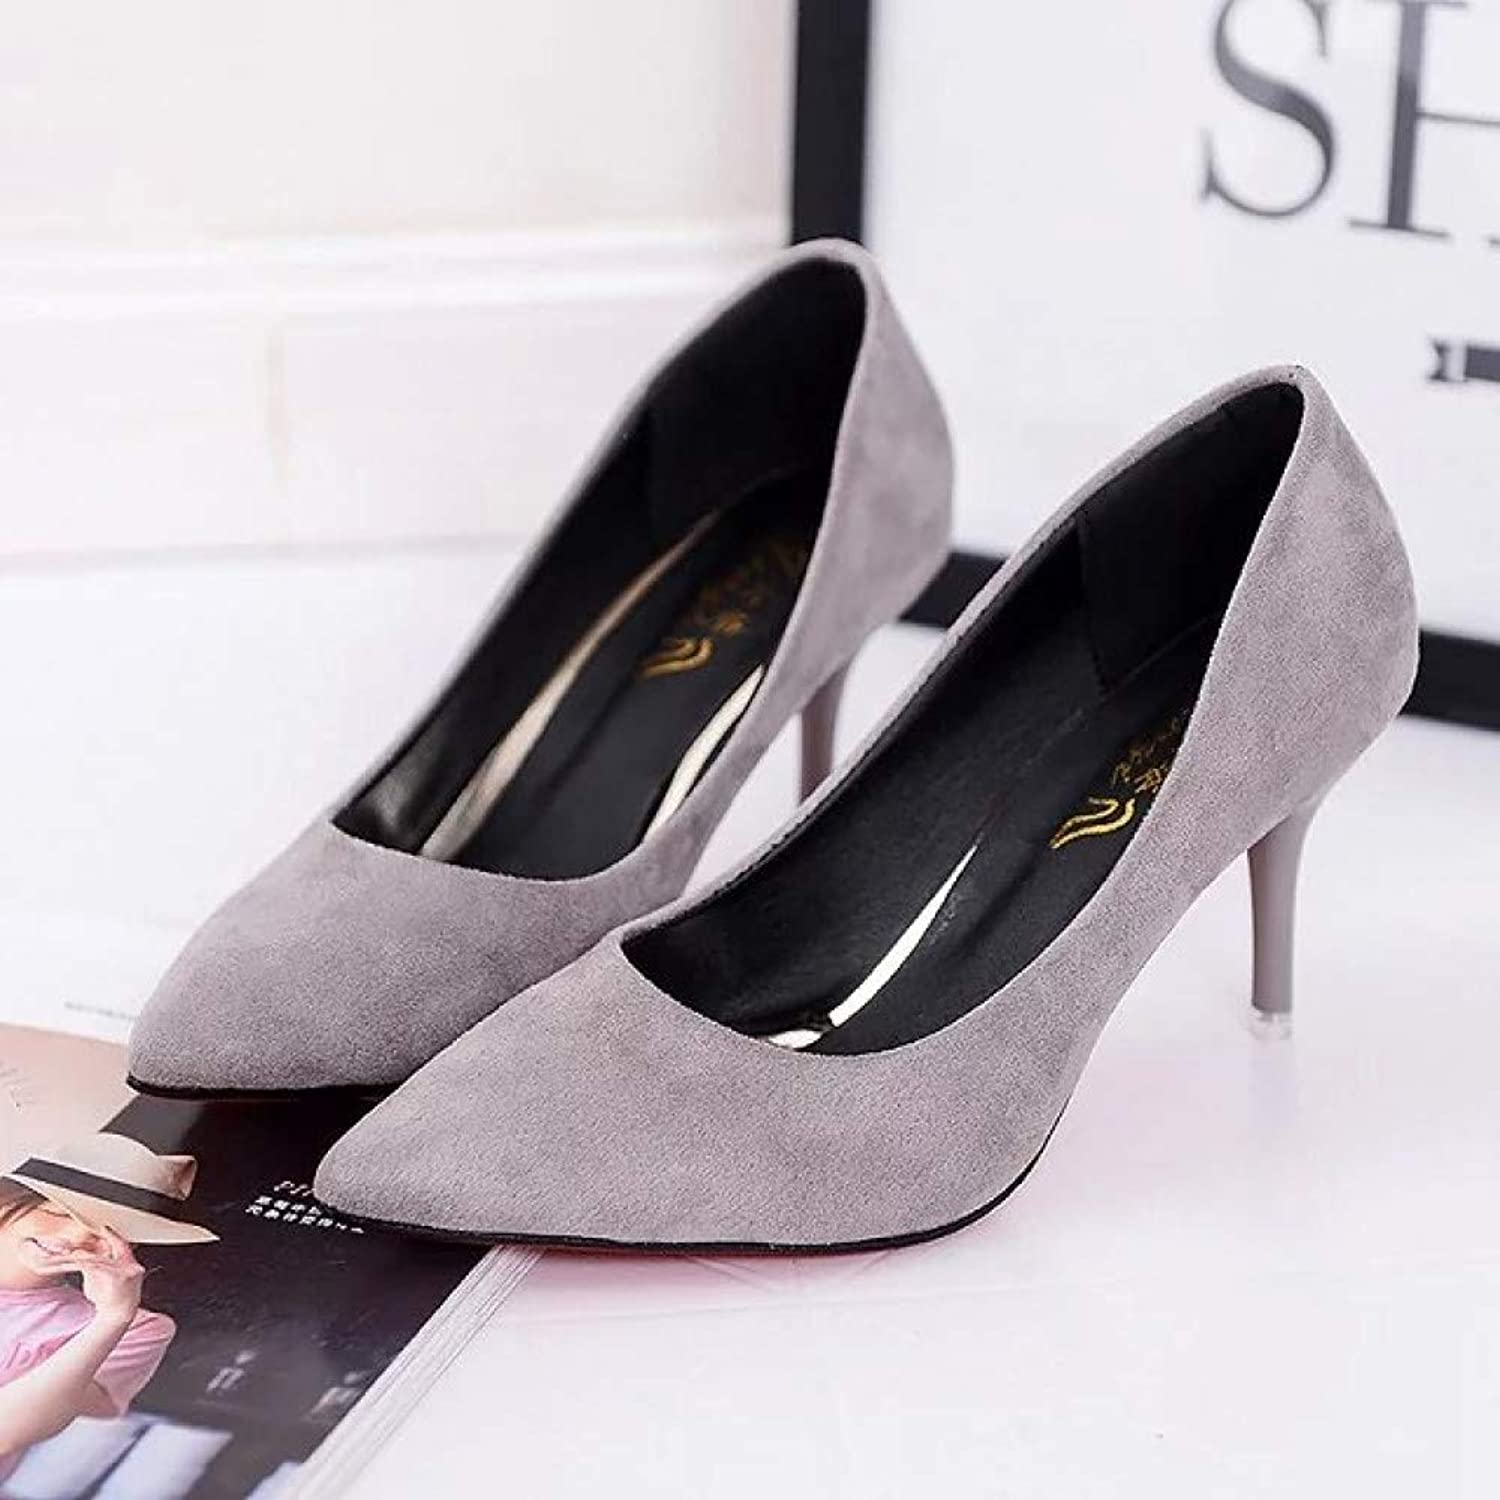 UKJSNHH igh Heels Candy color Women Dress shoes Pointed Toe Pumps High Heels Thin Heels Shallow Ladies shoes Large Size 34-42